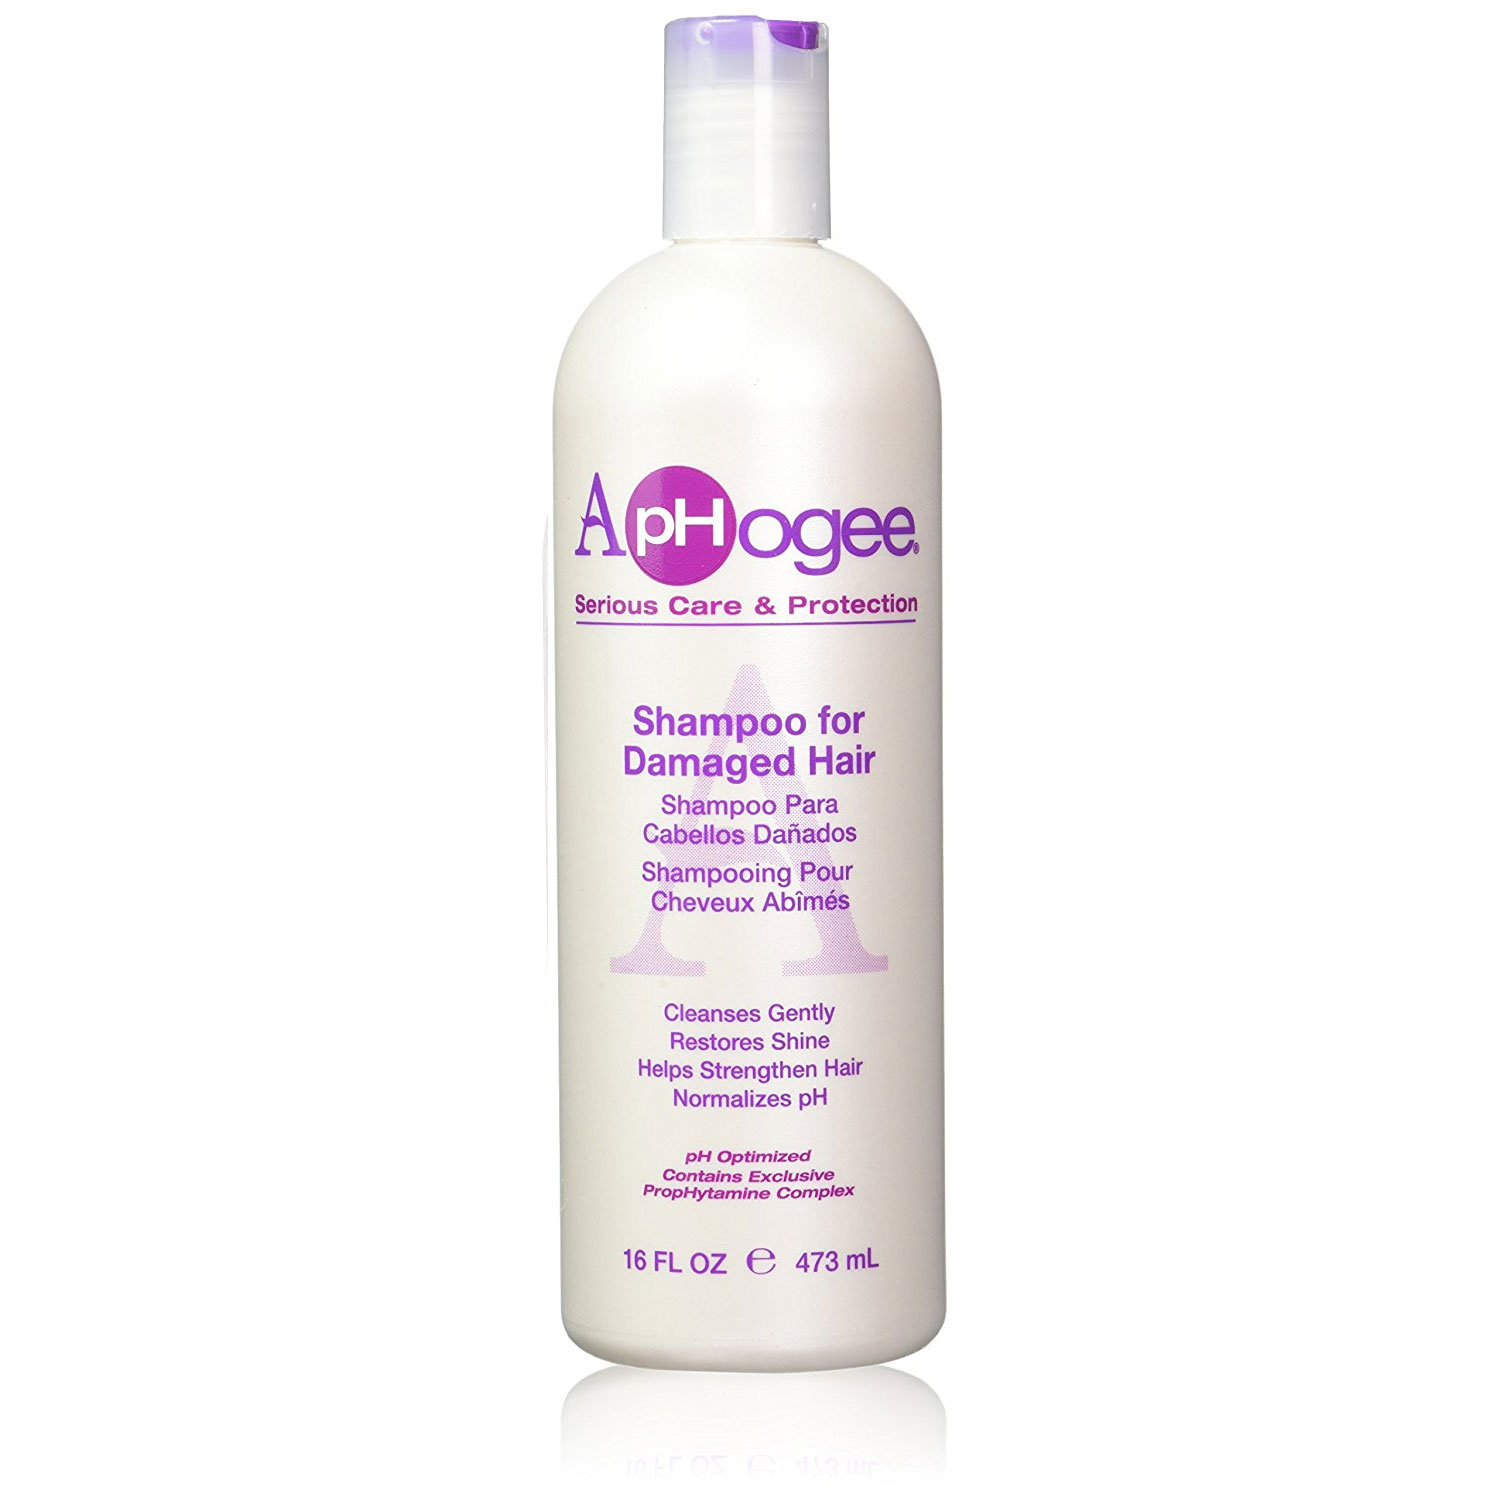 Image of Aphogee Shampoo For Damaged Hair - 16oz